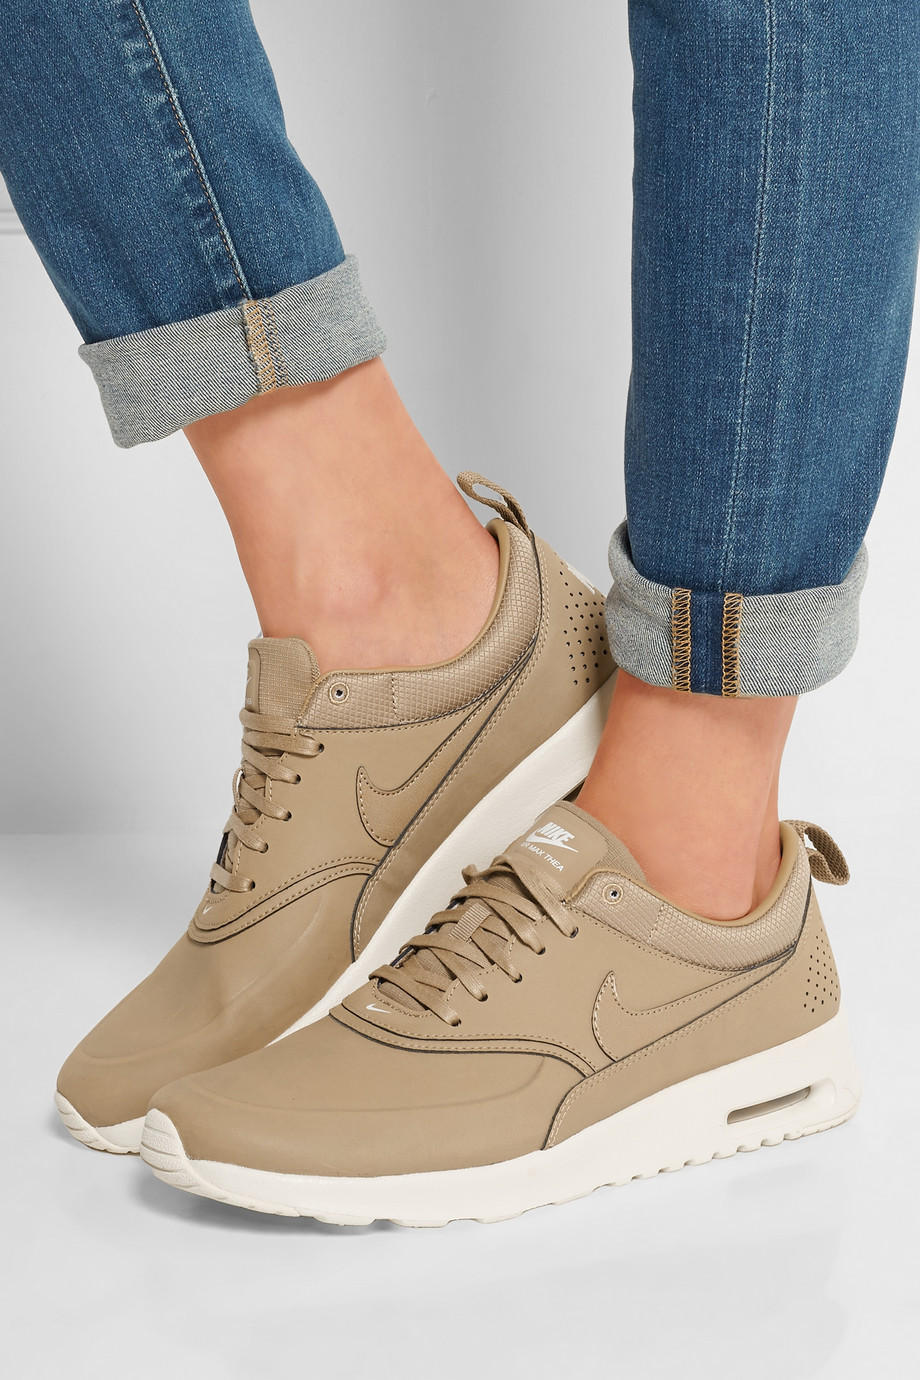 Nike - Air Max Thea leather sneakers from NET-A-PORTER  d211d6c4e